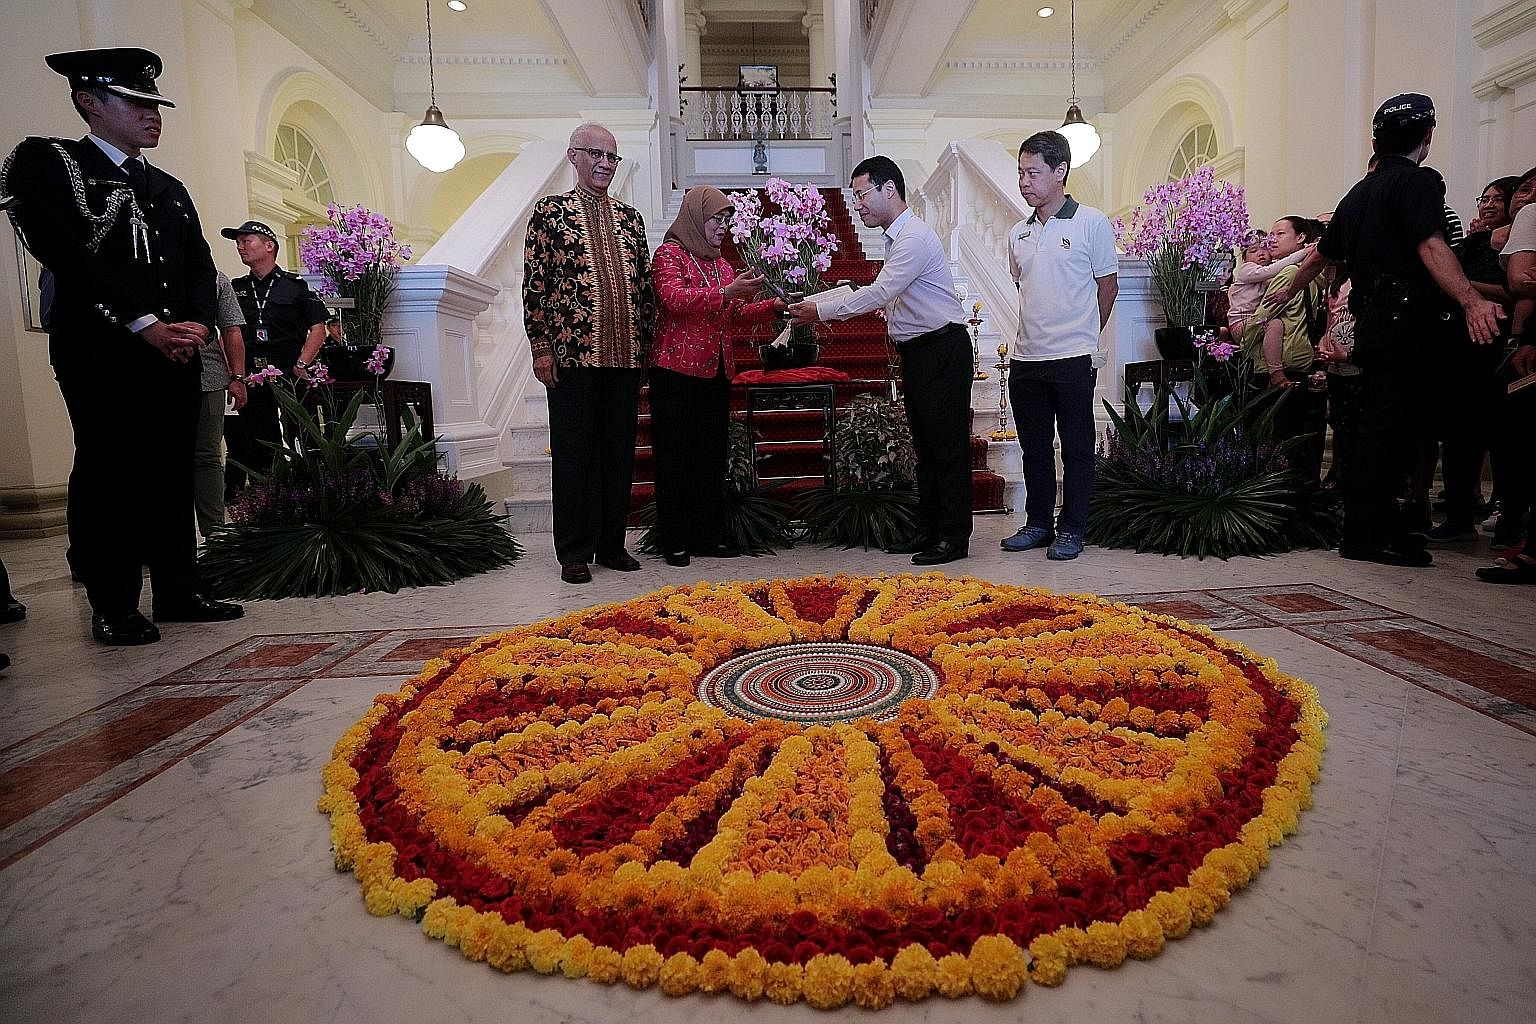 President Halimah Yacob unveiling the new Bicentennial Orchid at the Istana yesterday with Second Minister for National Development Desmond Lee, who is also Minister for Social and Family Development. They are flanked by Madam Halimah's husband, Mr M